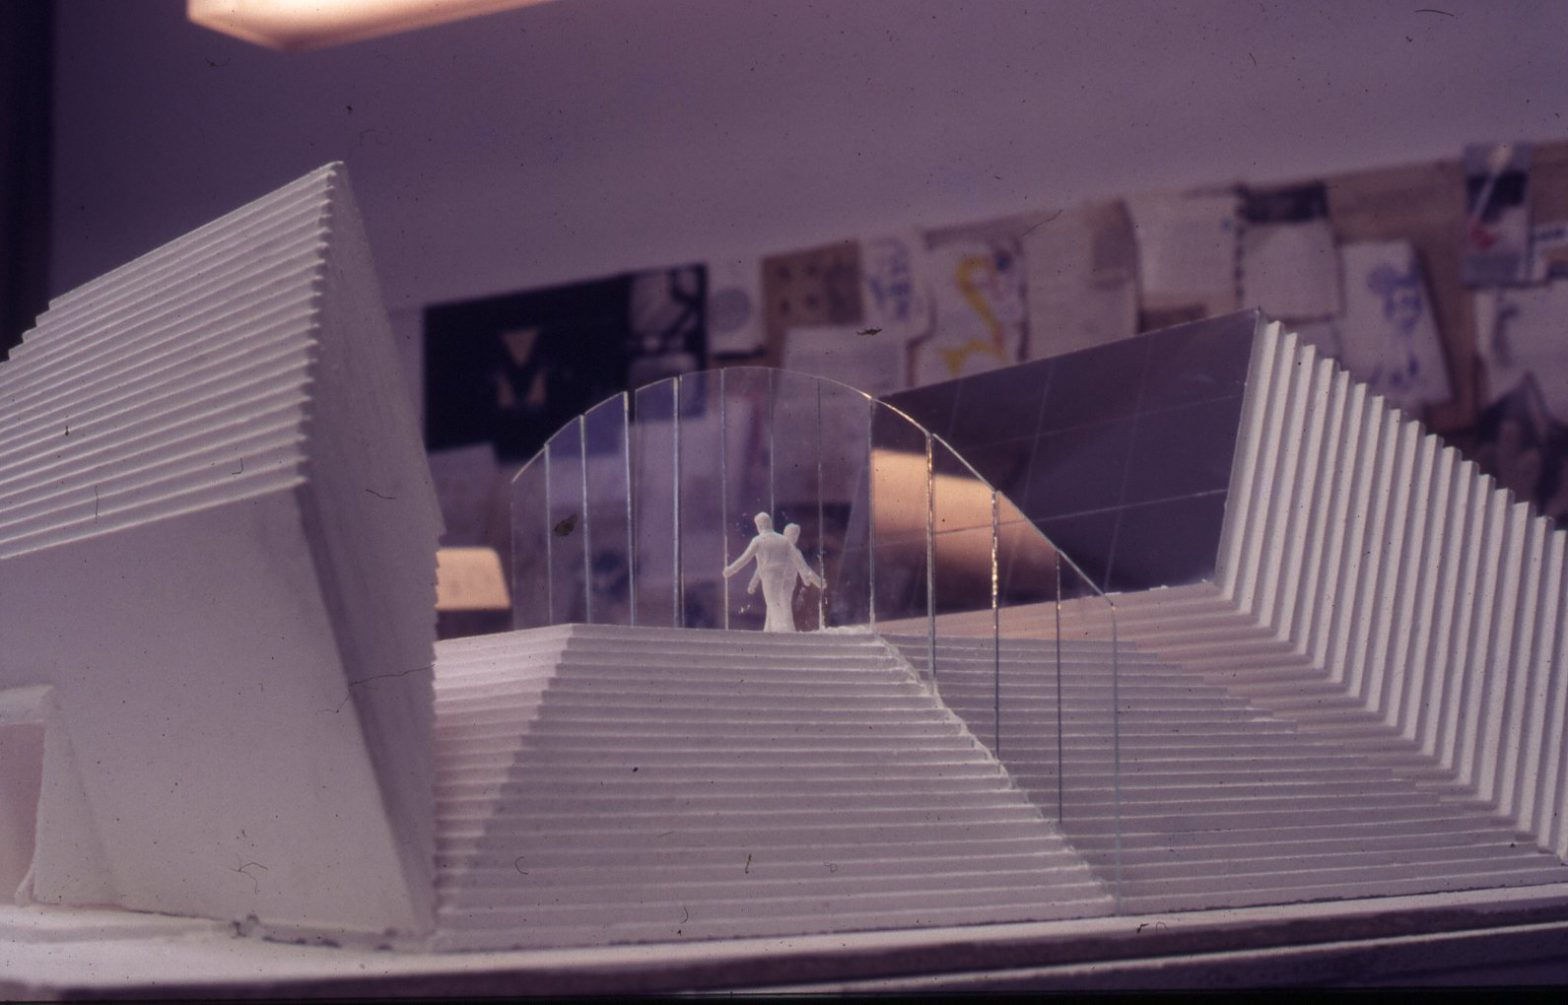 A step pyramid with a flat top. Glas panels divides the pyramind in 2 parts.